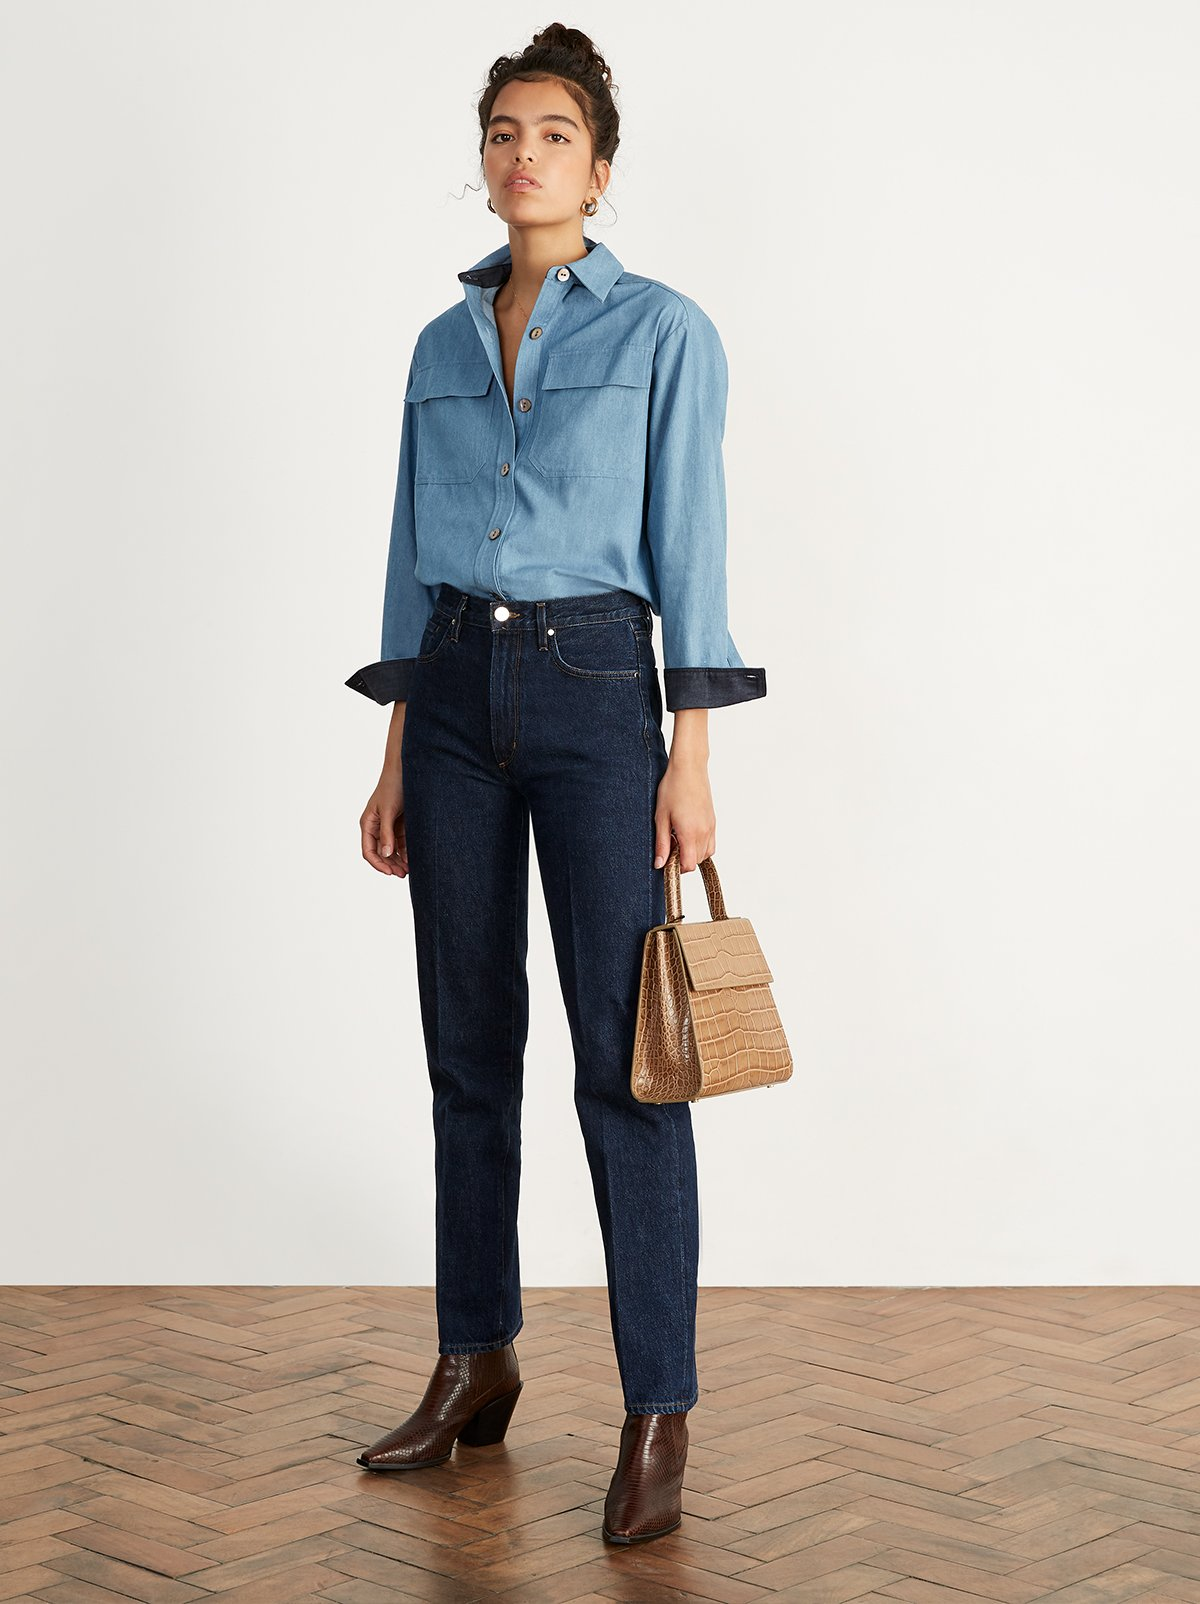 Sora Blue Chambray Shirt by KITRI Studio